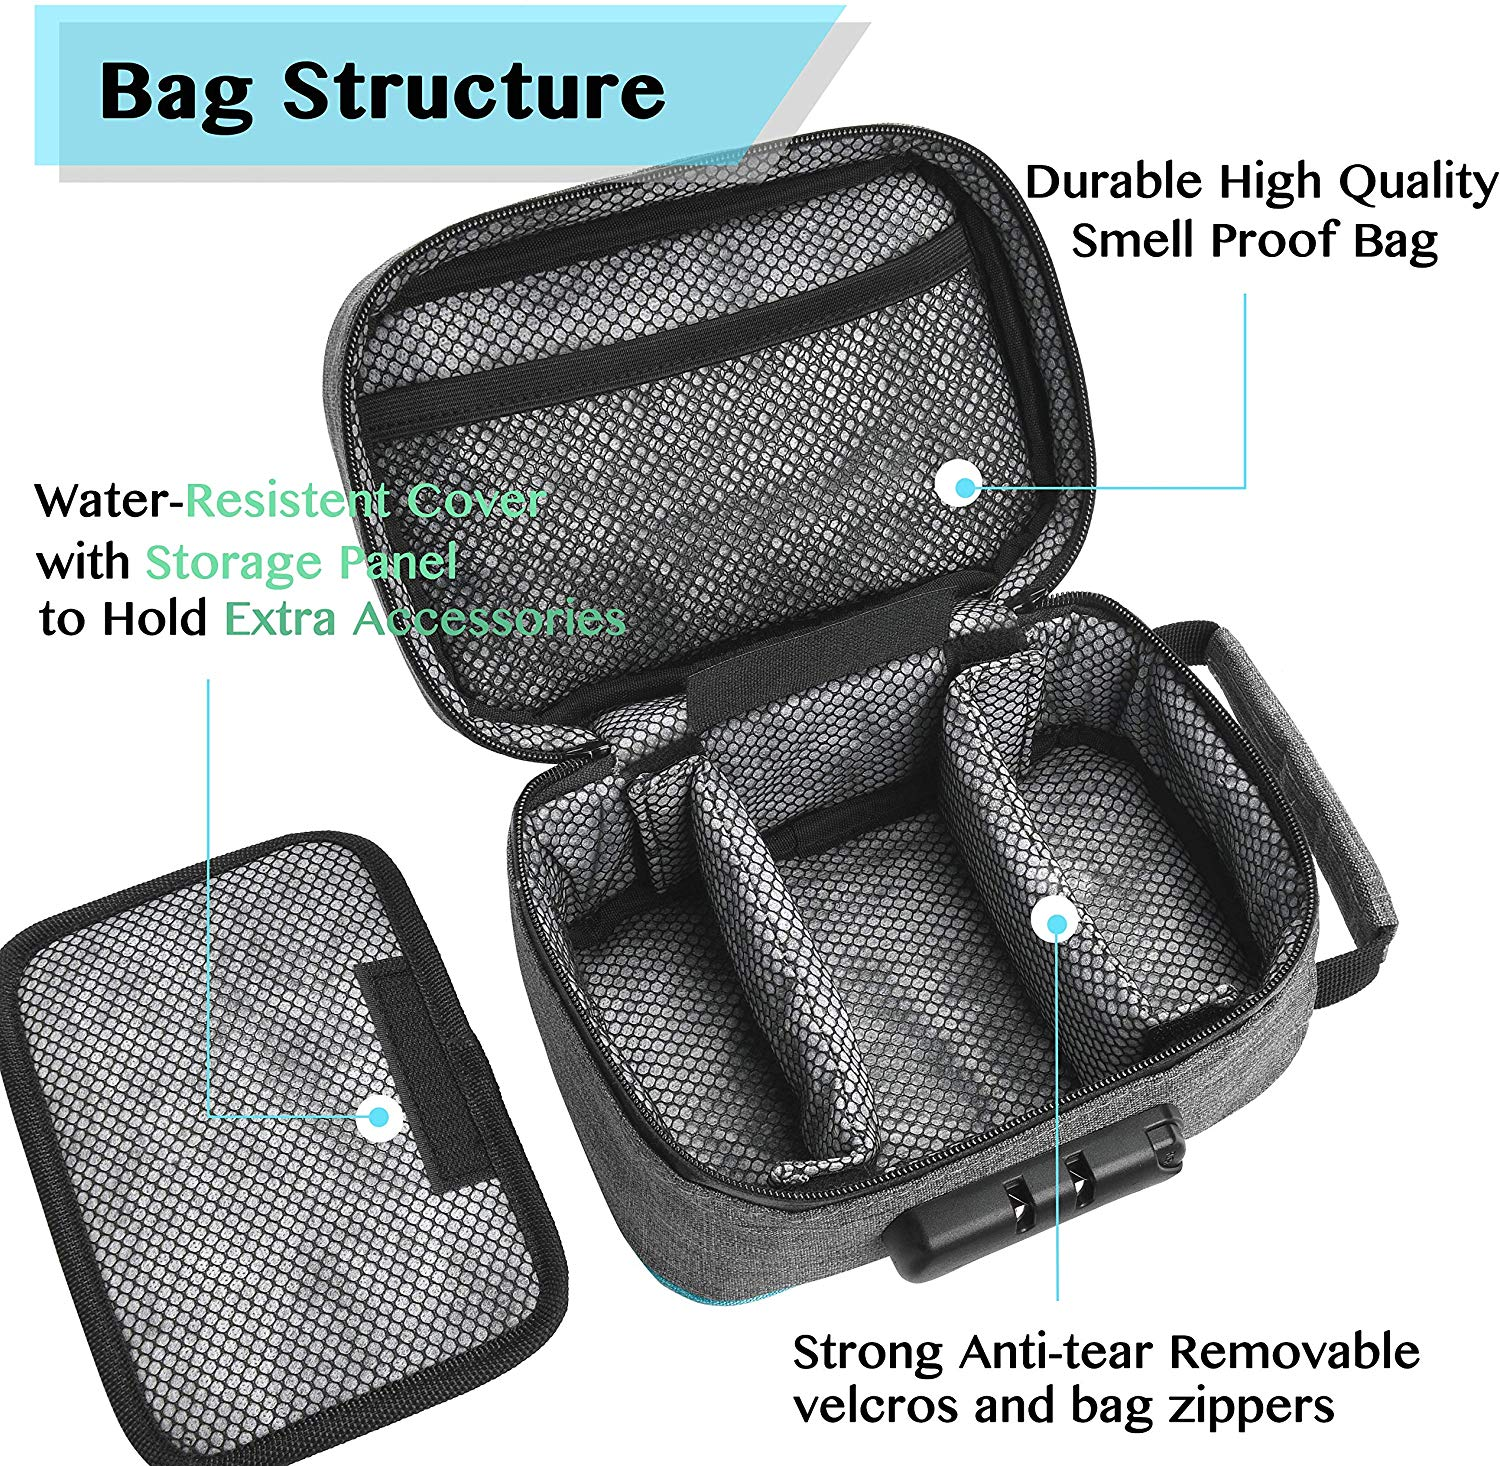 ECO FARM WEED CONTAINER BAG STORAGE CASE A1puUMDUVlL._AC_SL1500_2048x